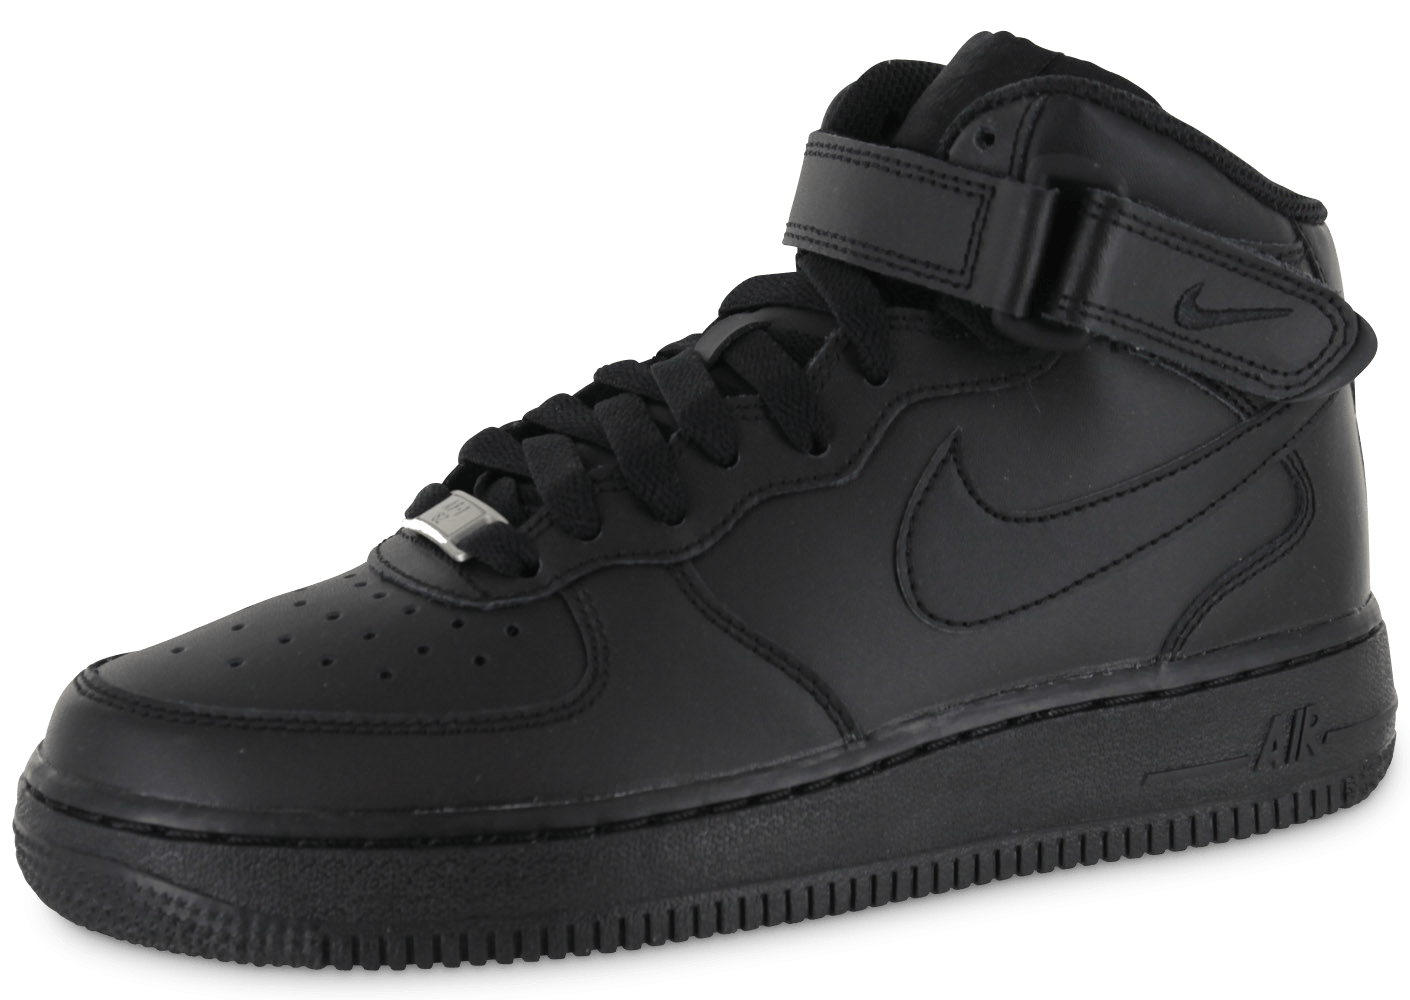 nike air force 1 mid j triple black chaussures black. Black Bedroom Furniture Sets. Home Design Ideas